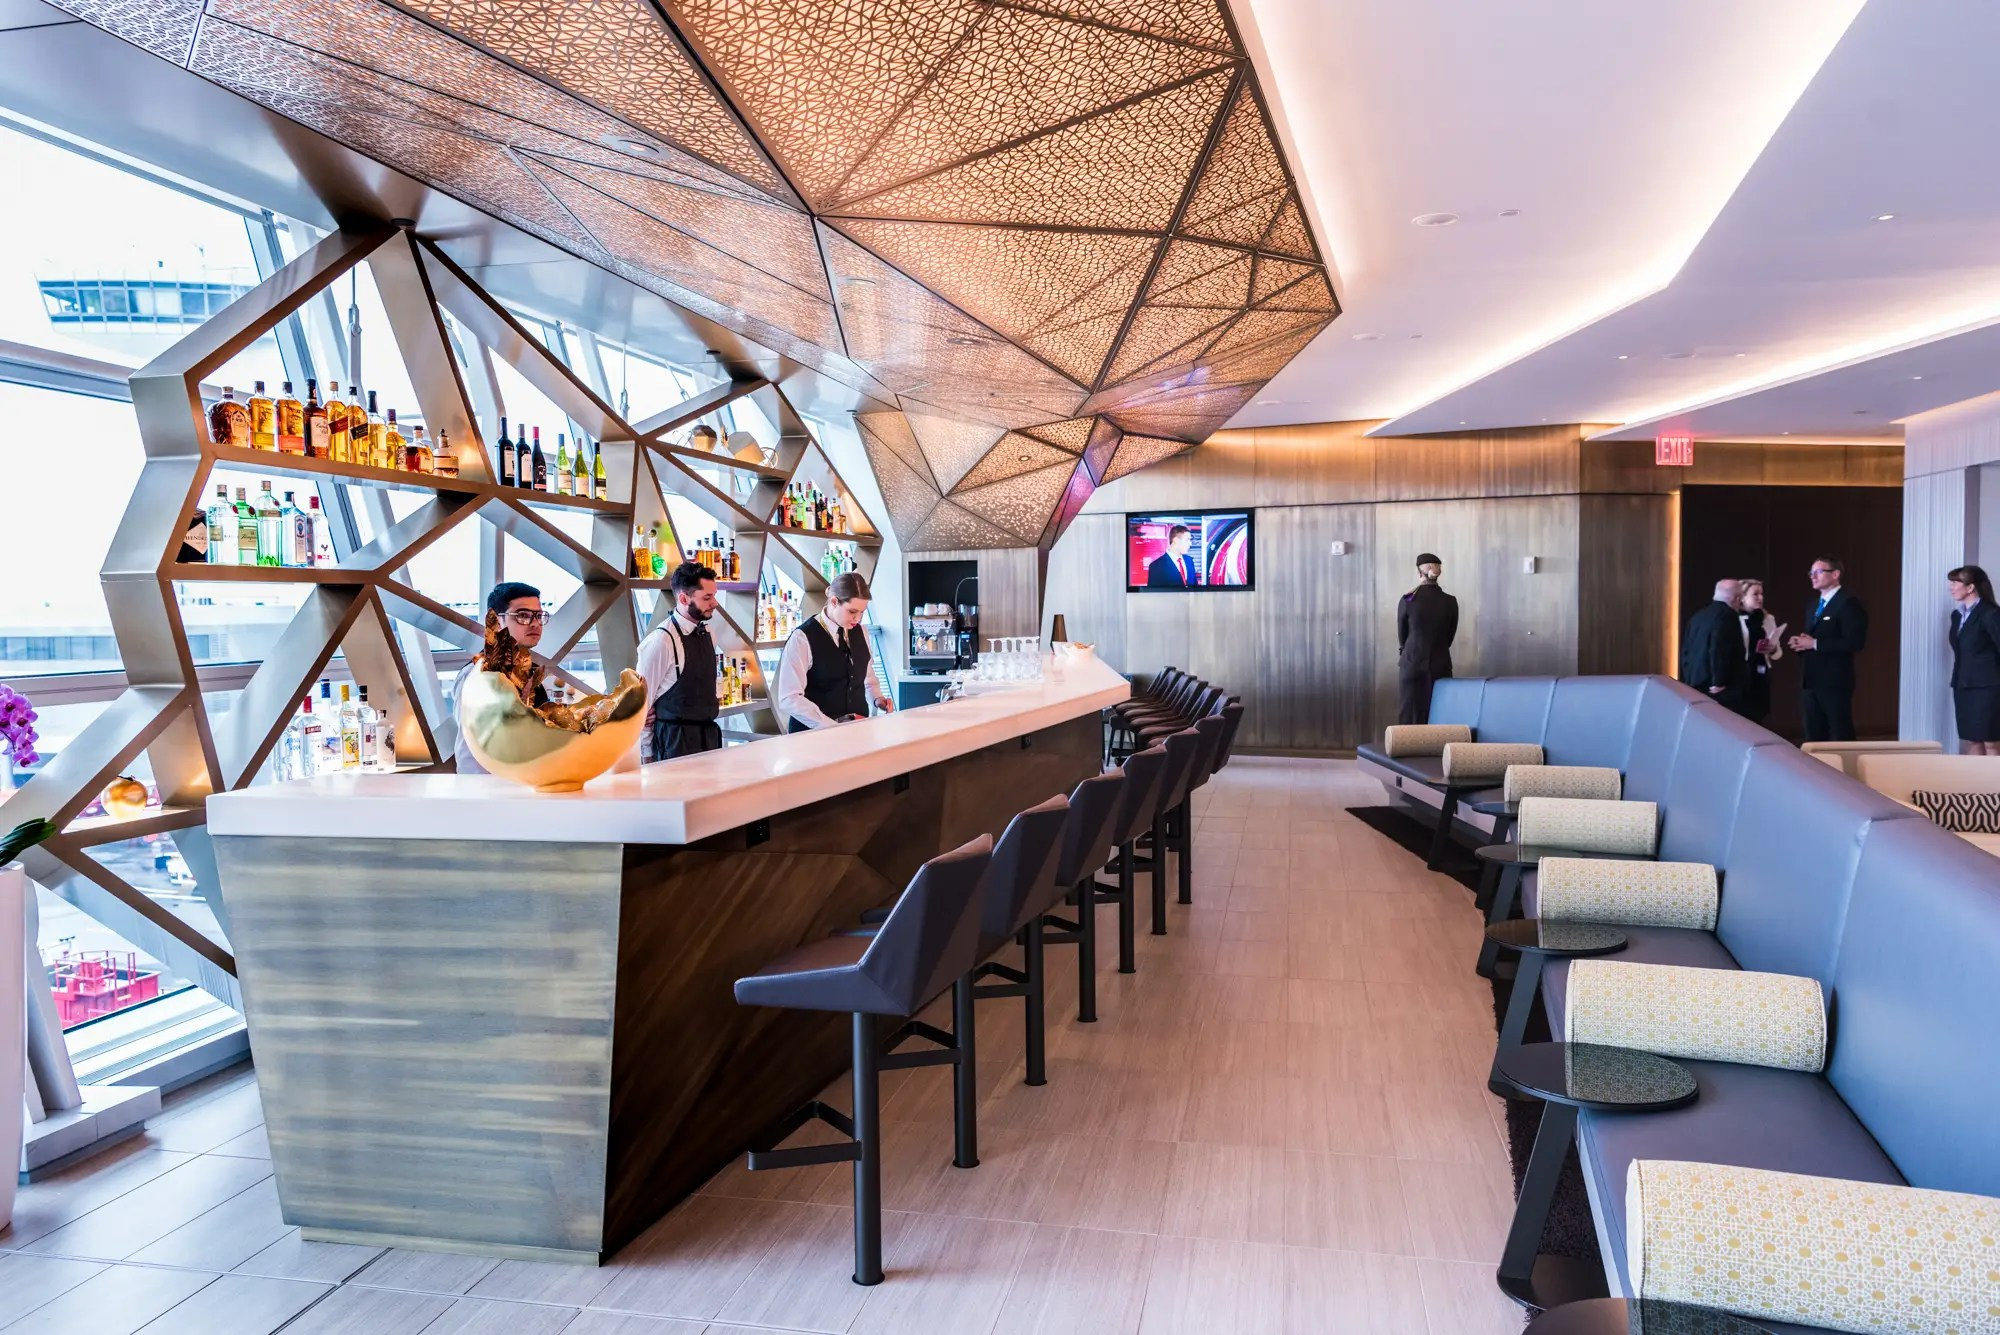 In addition to Etihad's own passengers, the lounge is also available for premium cabin passengers flying with equity partner Air Serbia.